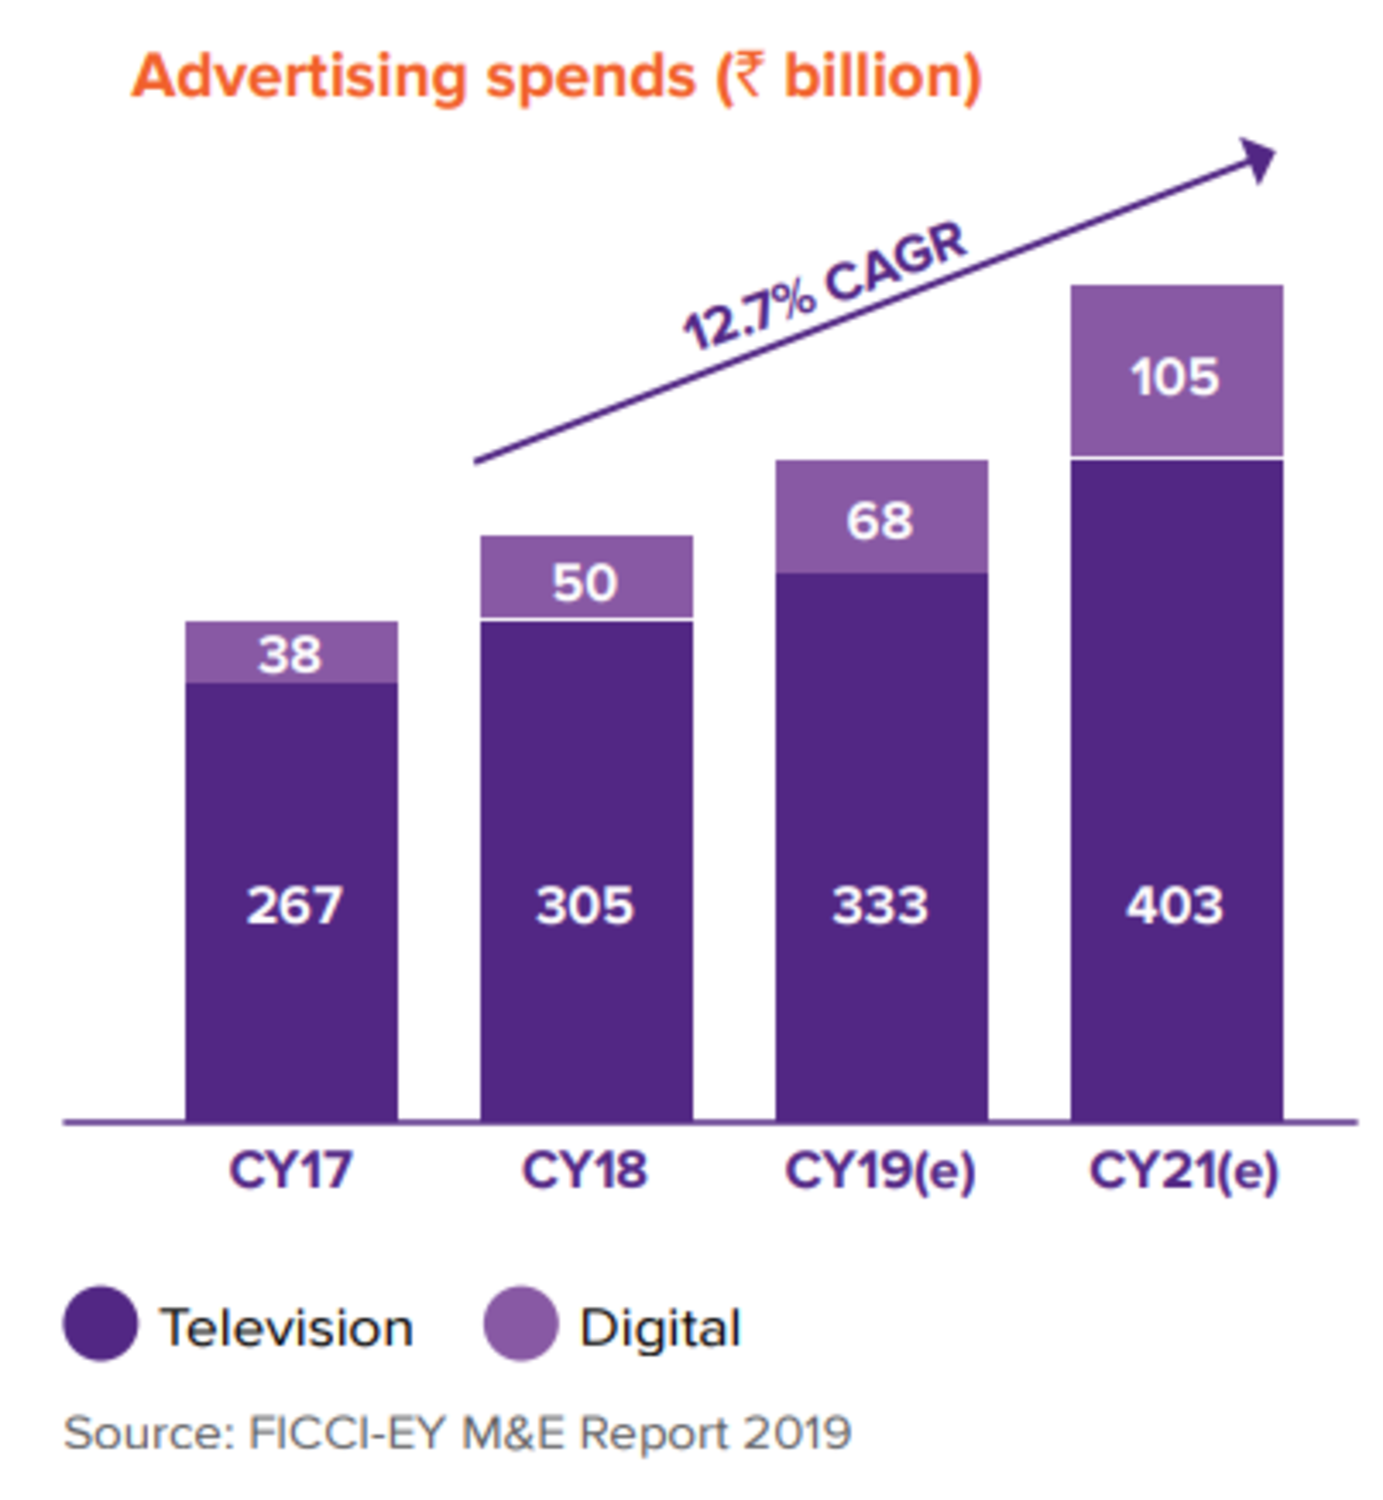 Advertising spends in India